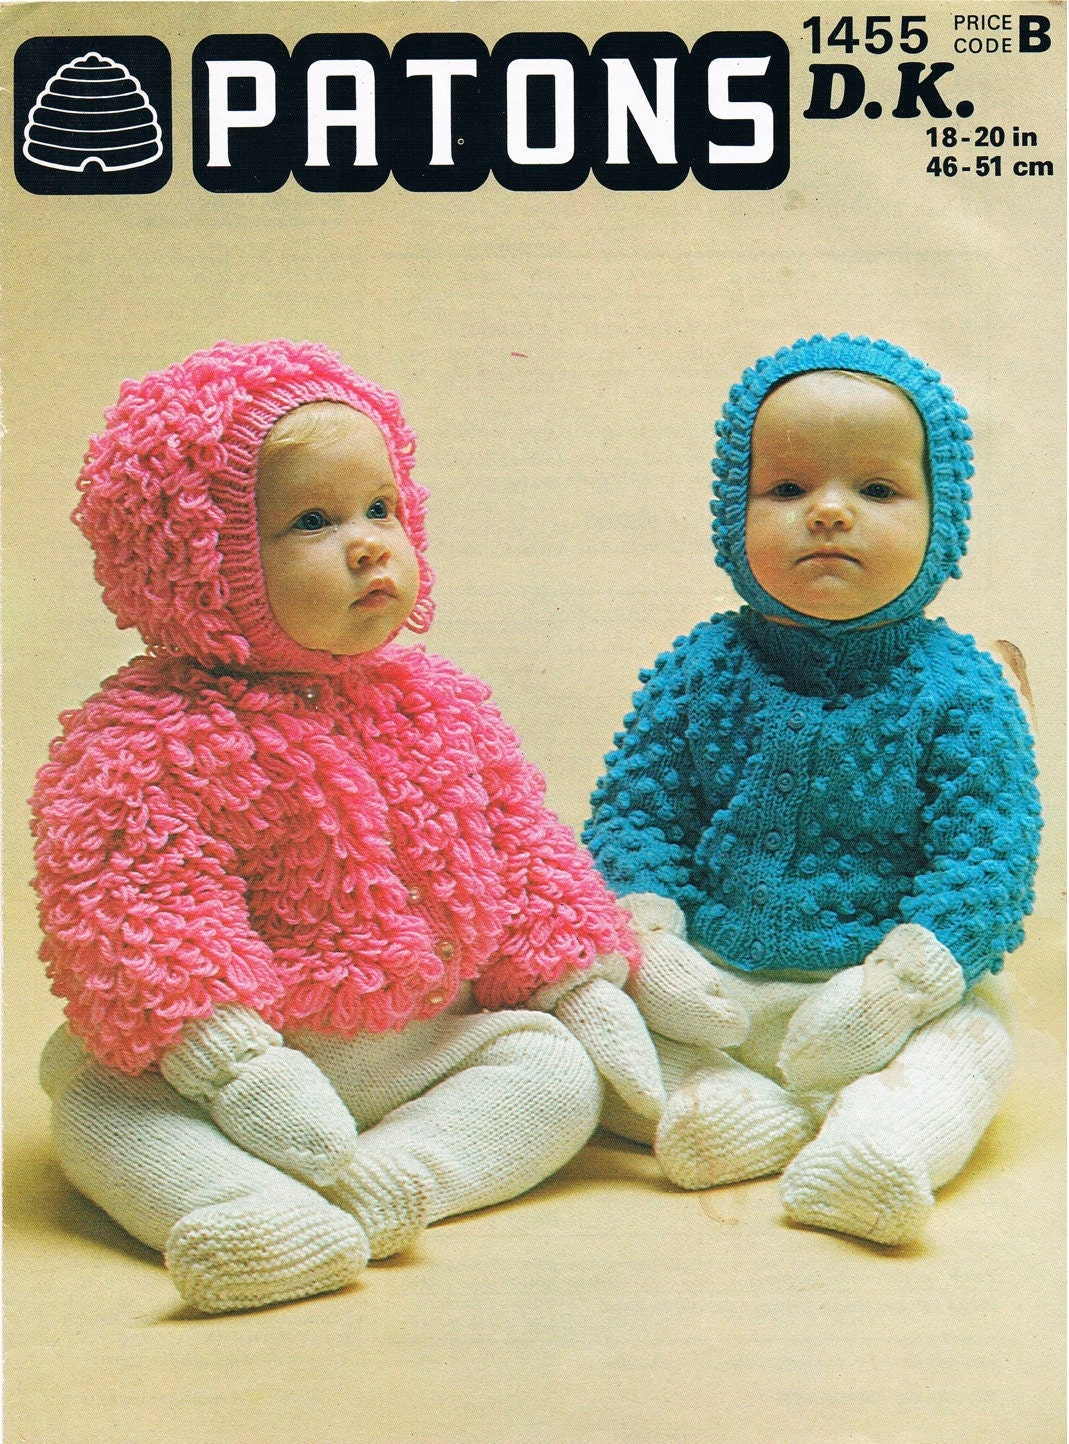 Loopy Cardigan Knitting Pattern : Vintage knitting pattern pdf s patons baby bobble or